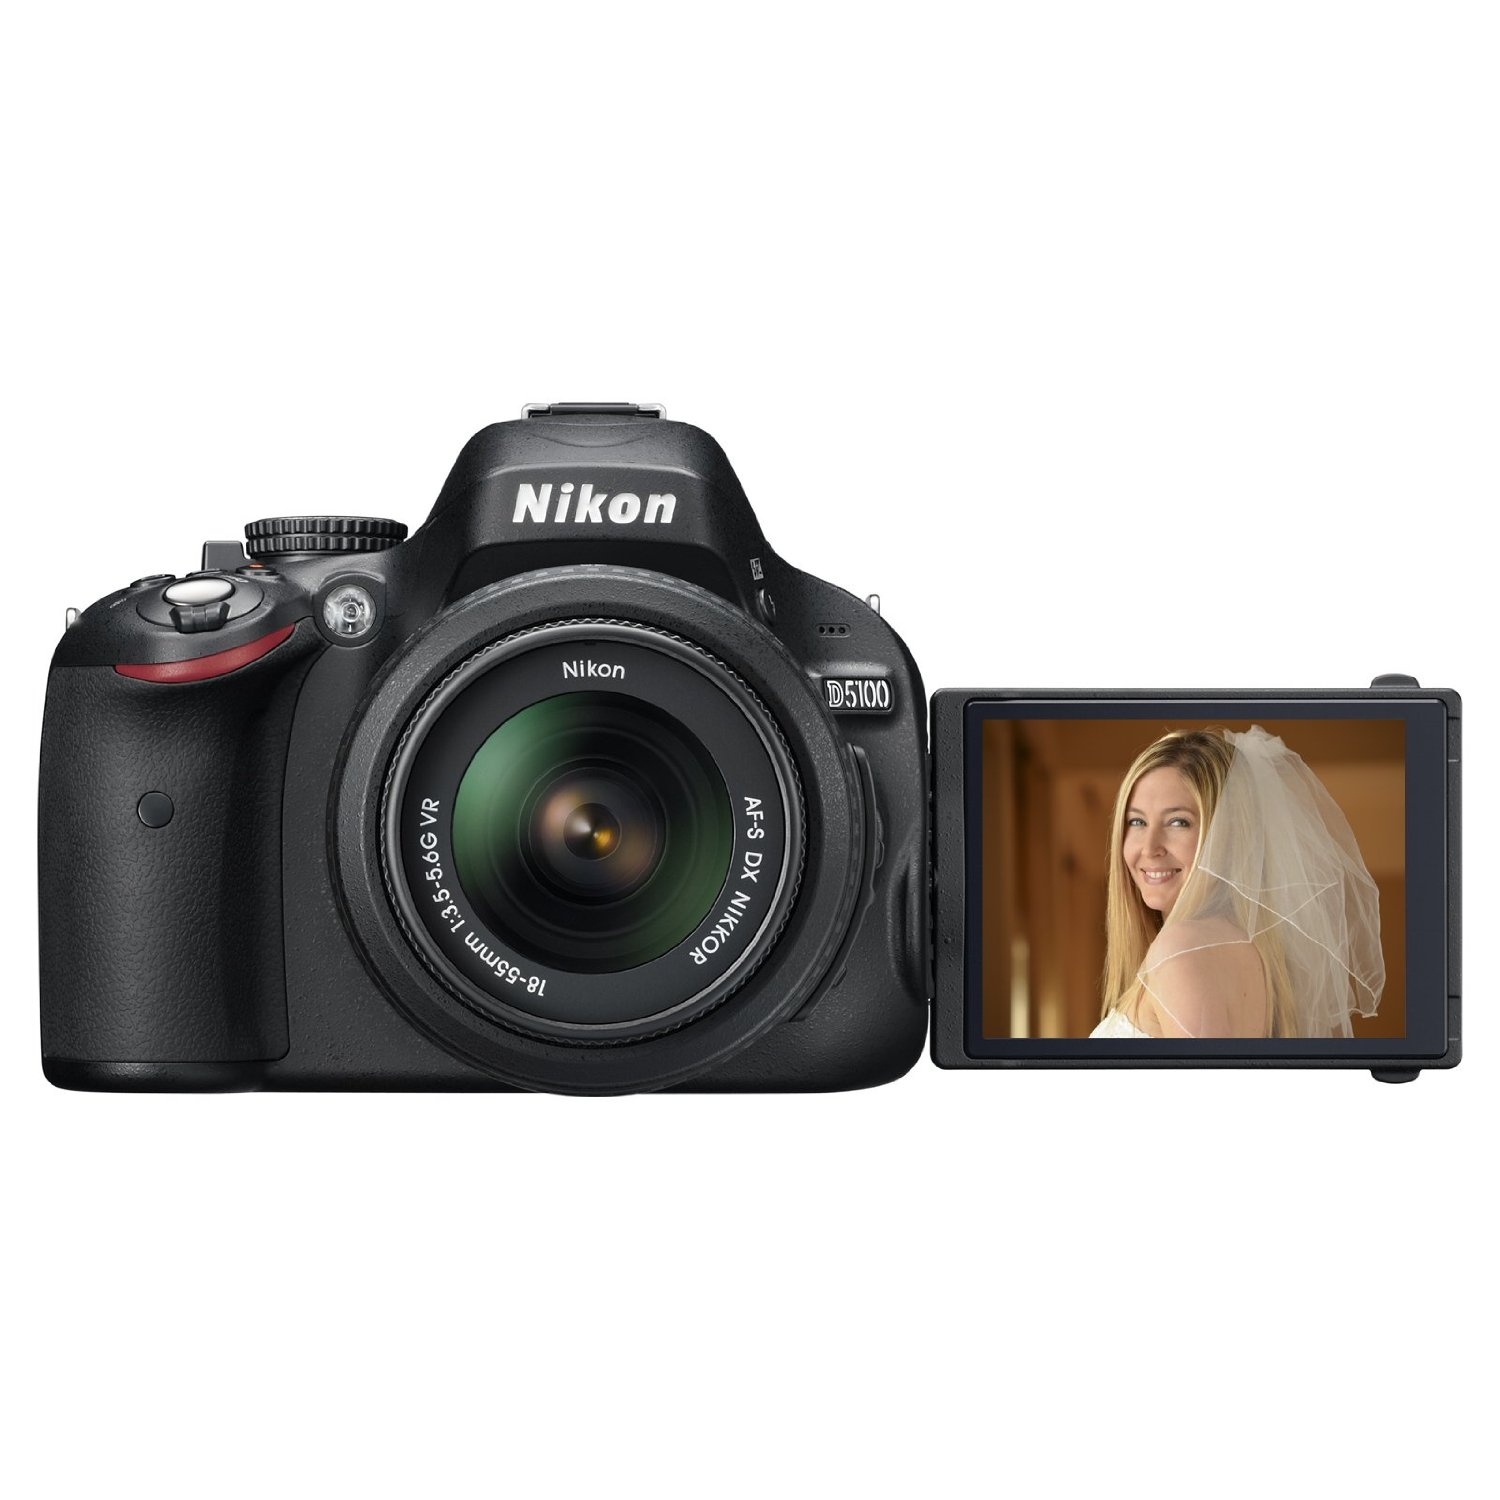 Nikon+D5100+16.2MP+CMOS+Digital+SLR+Camera+6.jpg